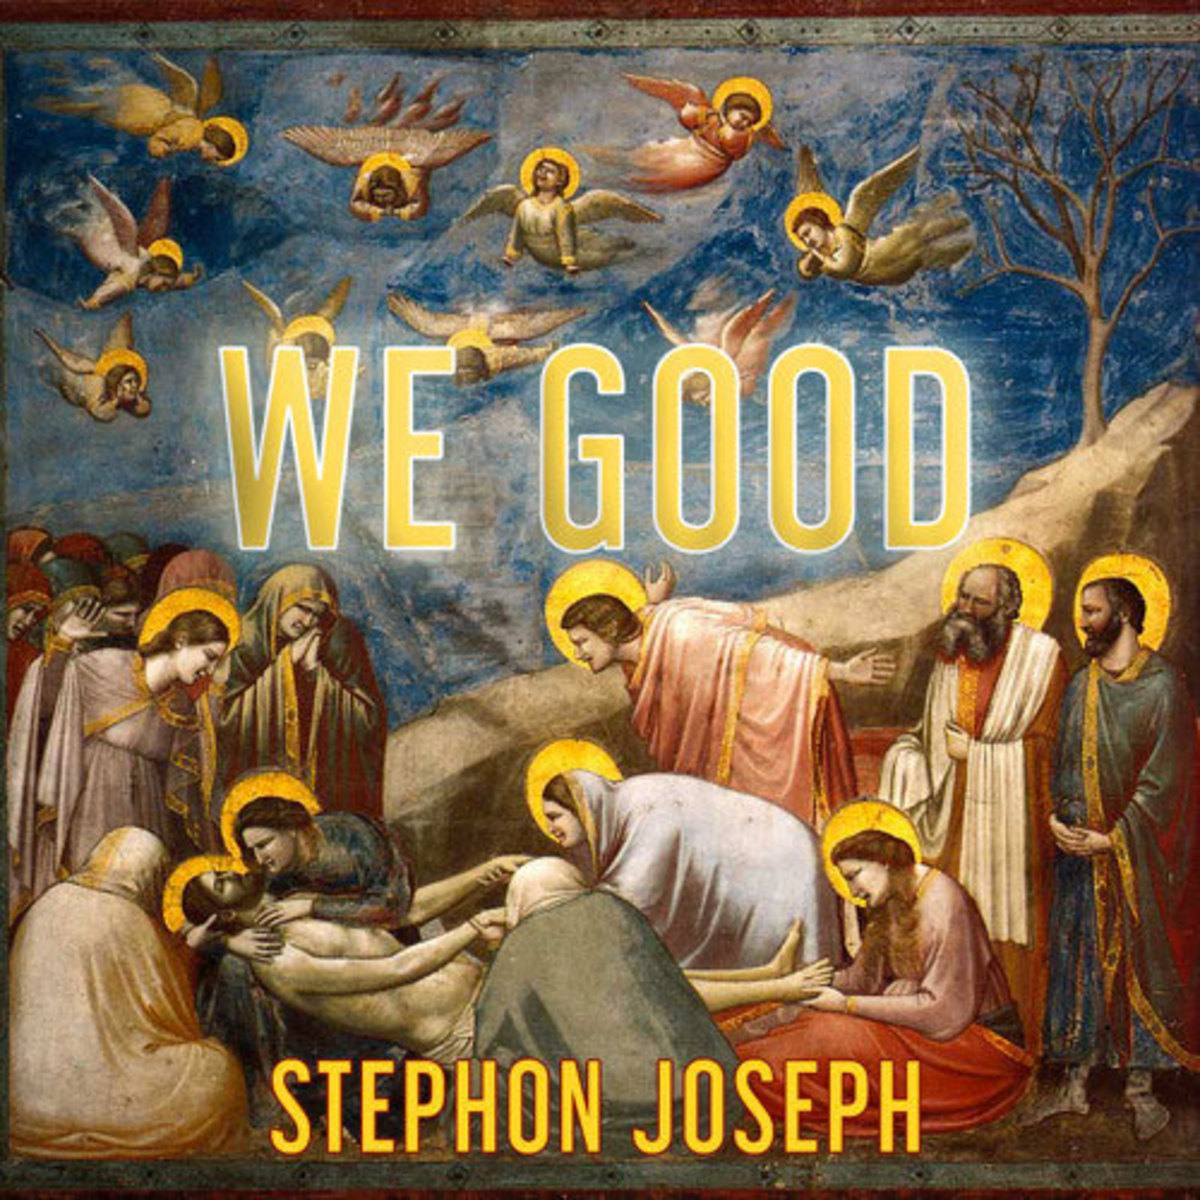 stephon-joseph-we-good.jpg